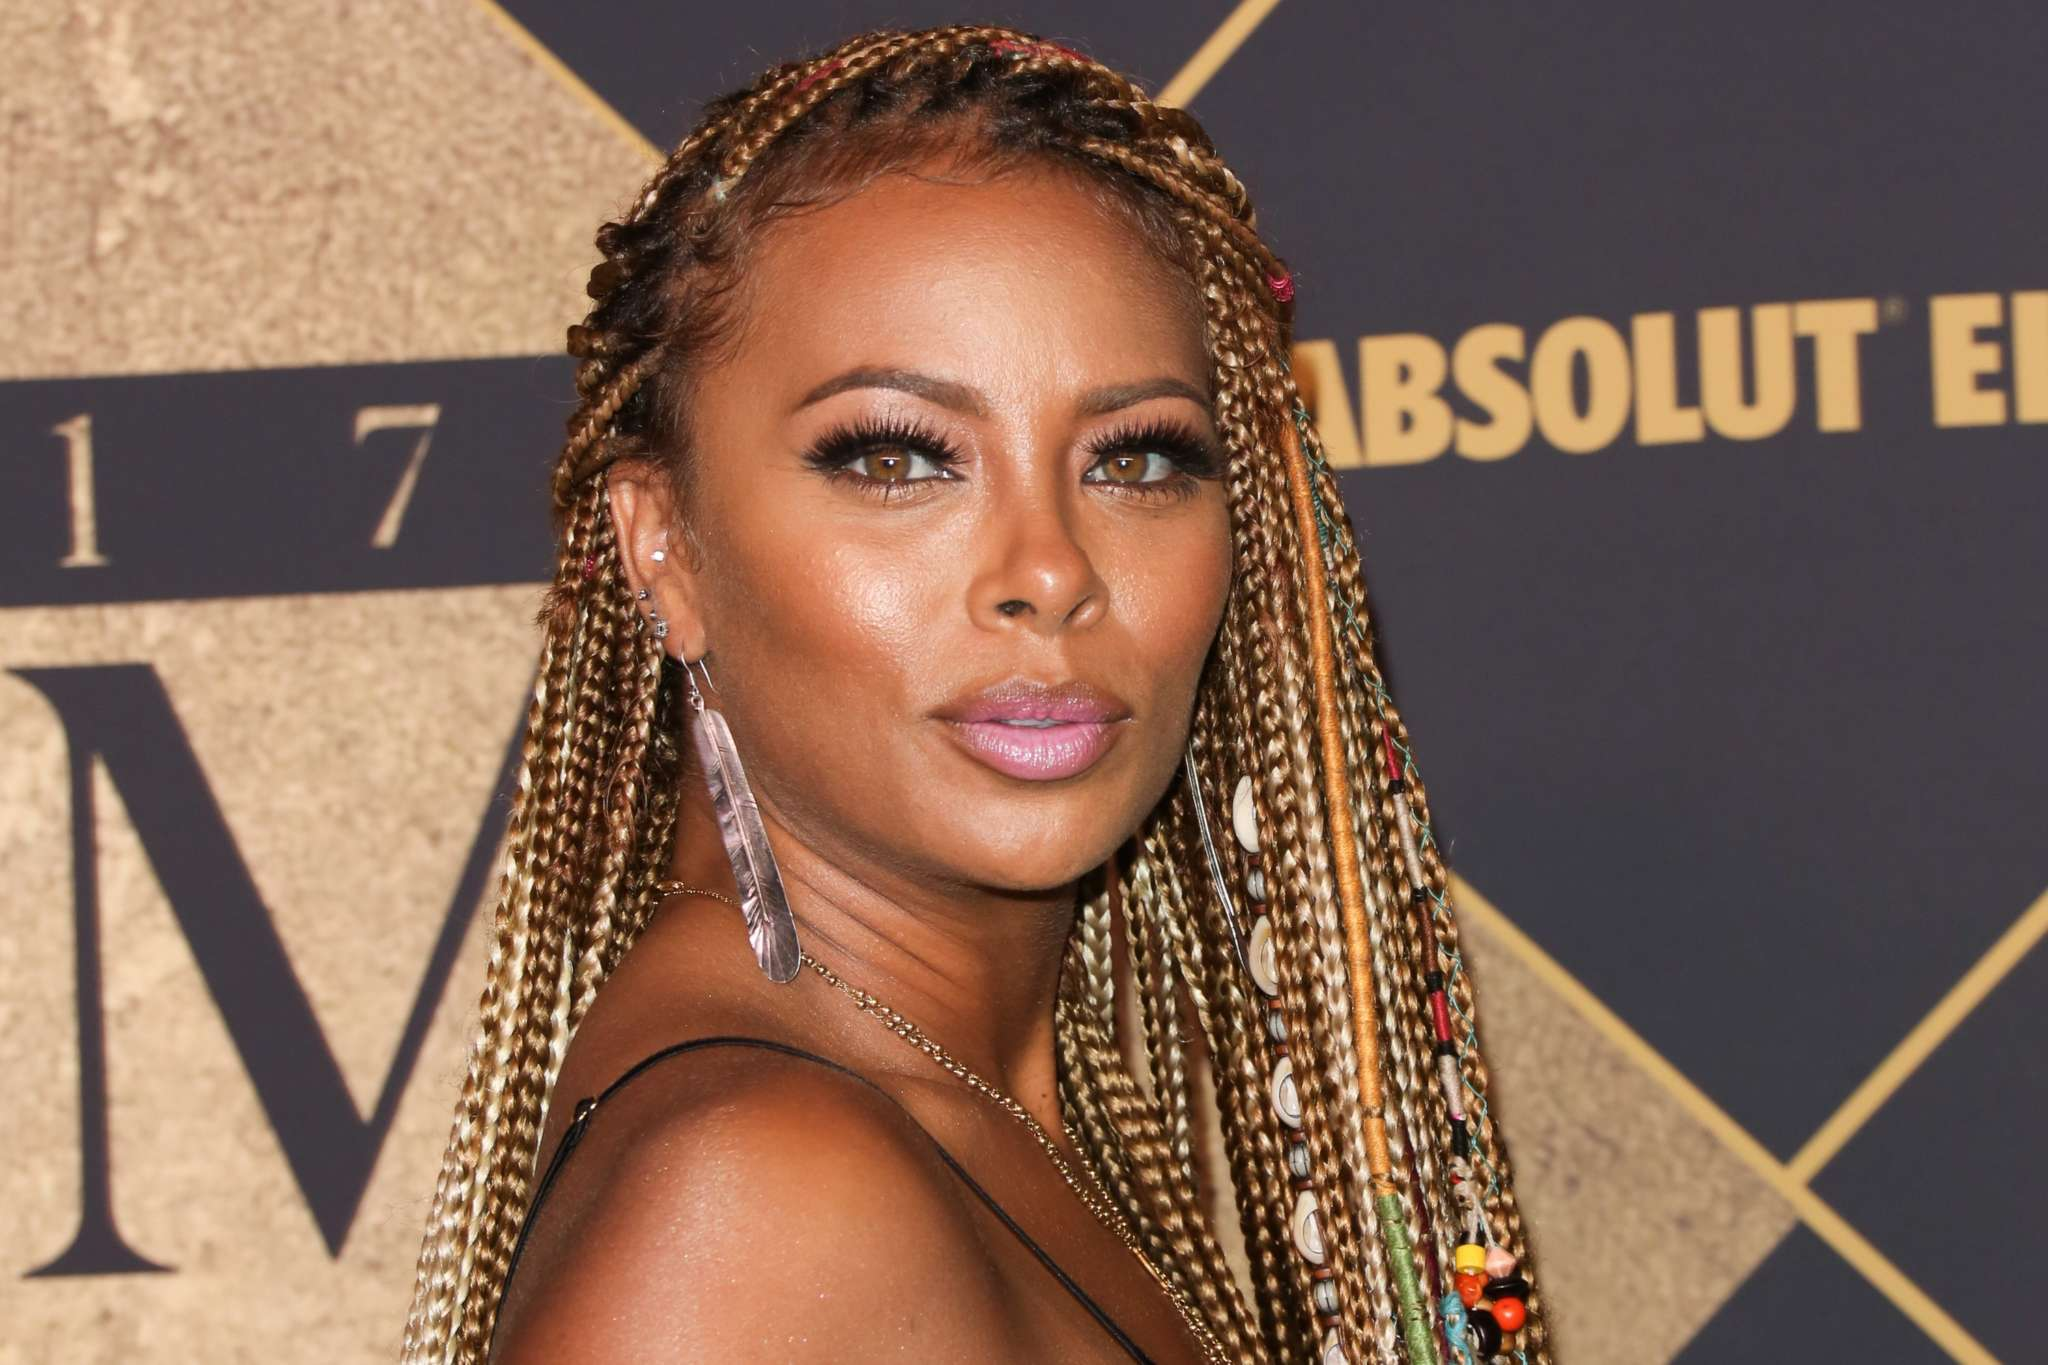 """eva-marcille-shares-a-video-from-a-photo-session-and-fans-are-in-awe"""